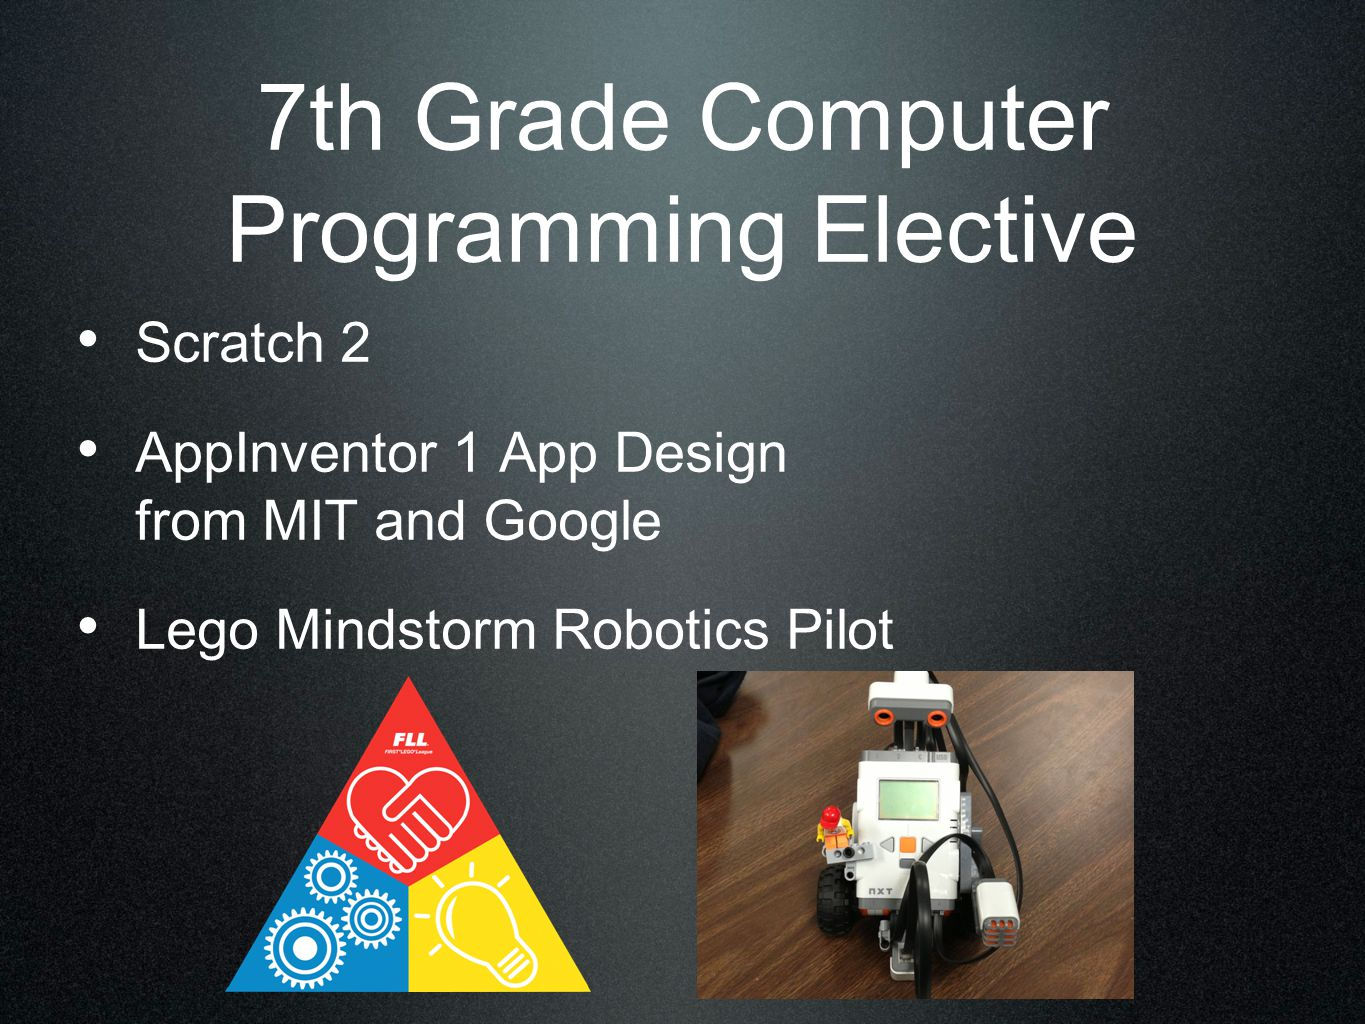 7th Grade Computer Programming Elective Scratch 2 AppInventor 1 App Design from MIT and Google Lego Mindstorm Robotics Pilot